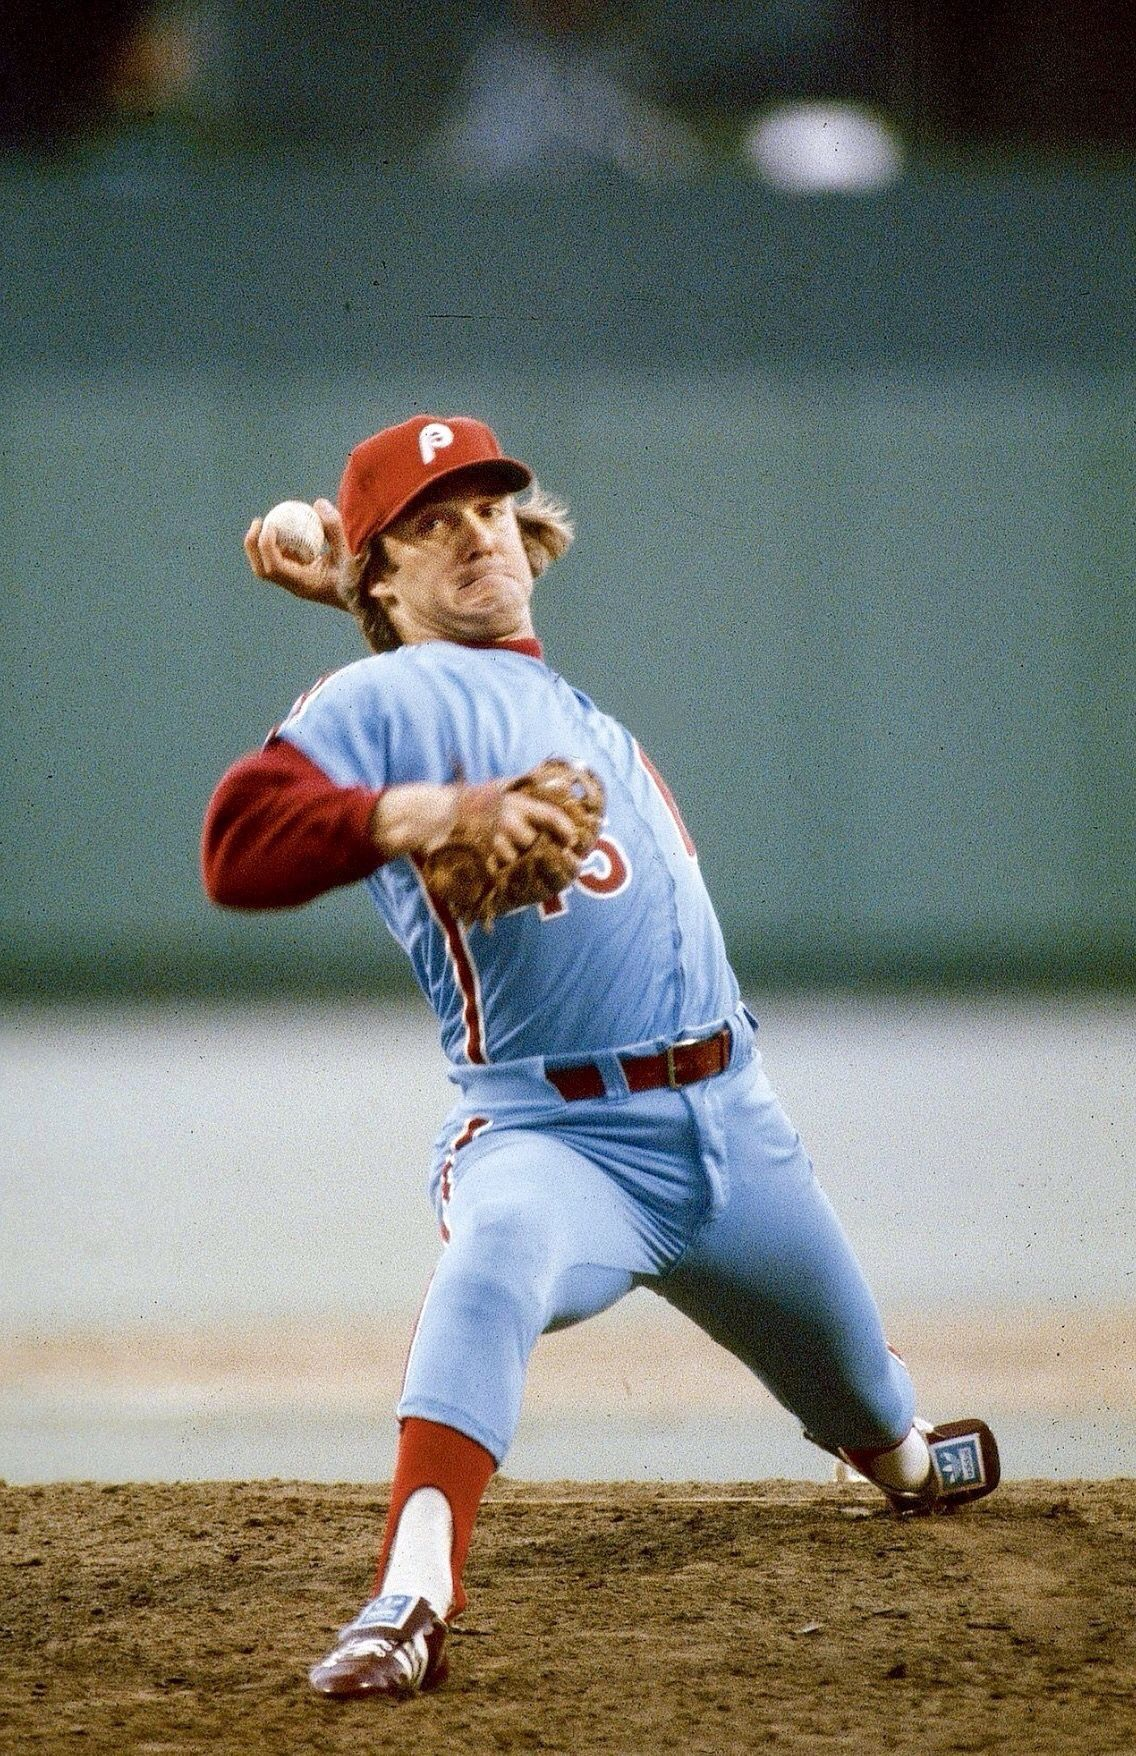 Tug Mcgraw In 2020 Phillies Baseball Spring Training Baseball Baseball Players